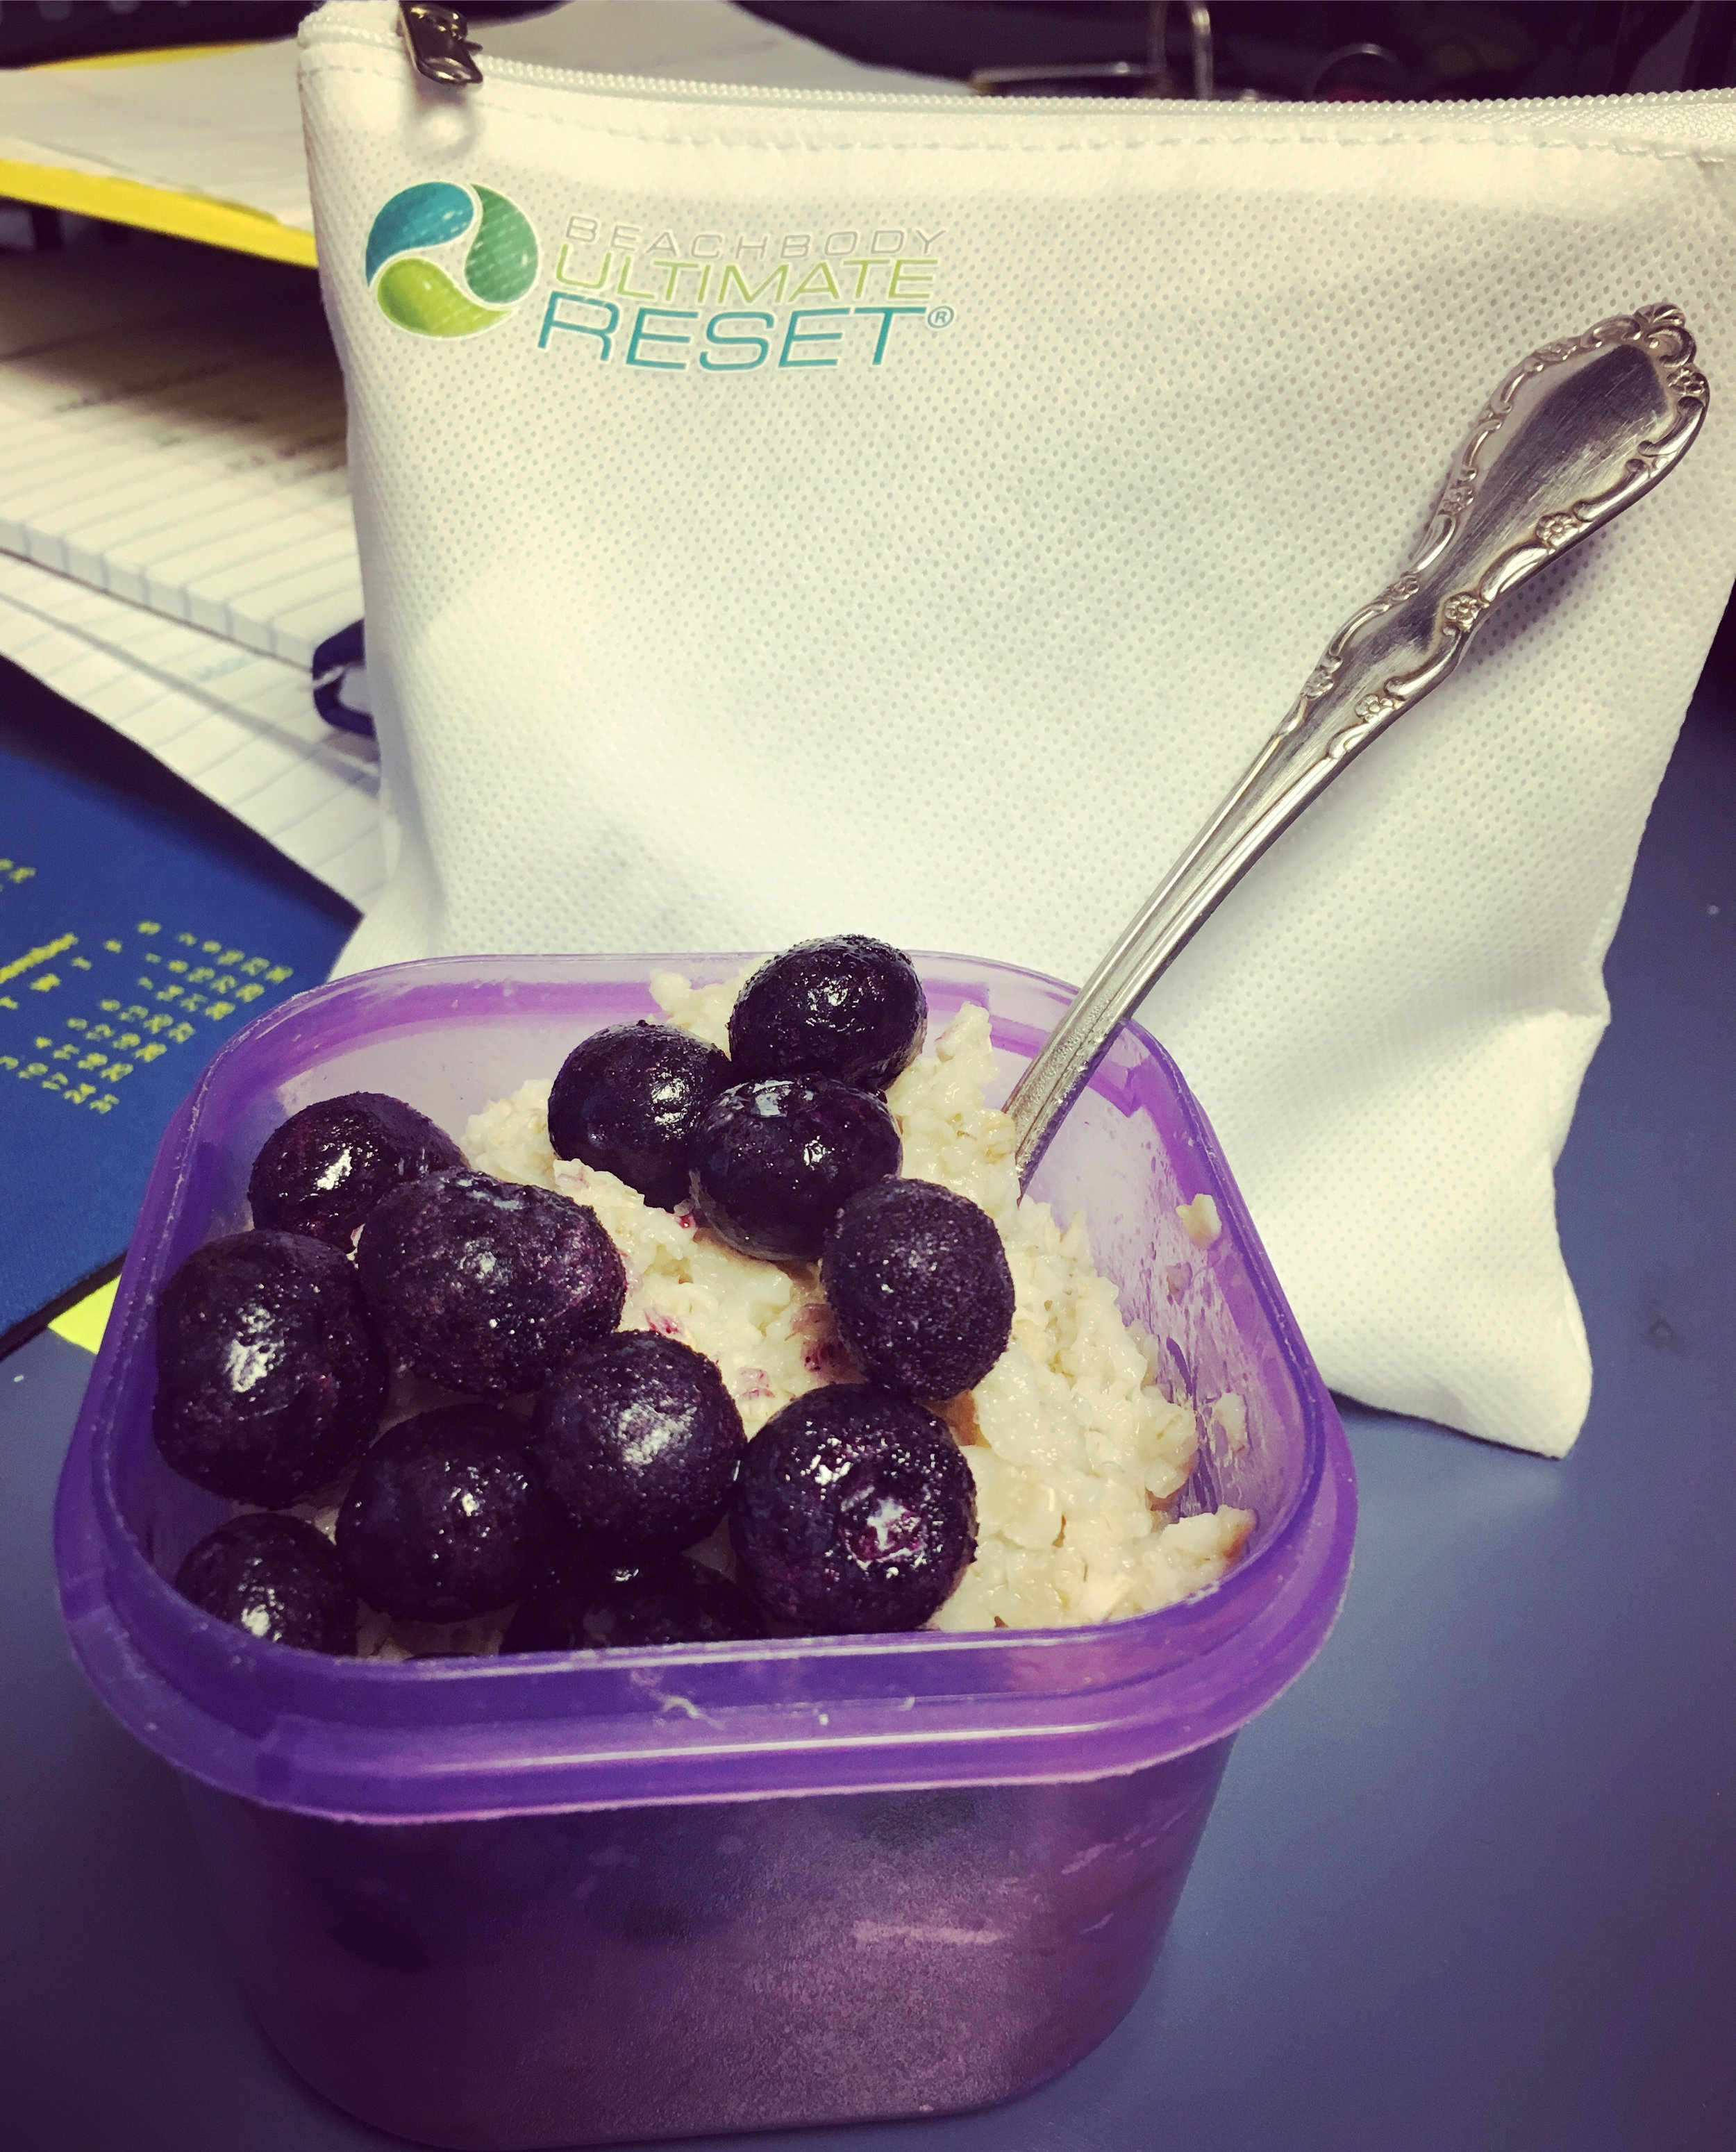 My kind of breakfast - blueberry oatmeal and my little Reset goody bag!